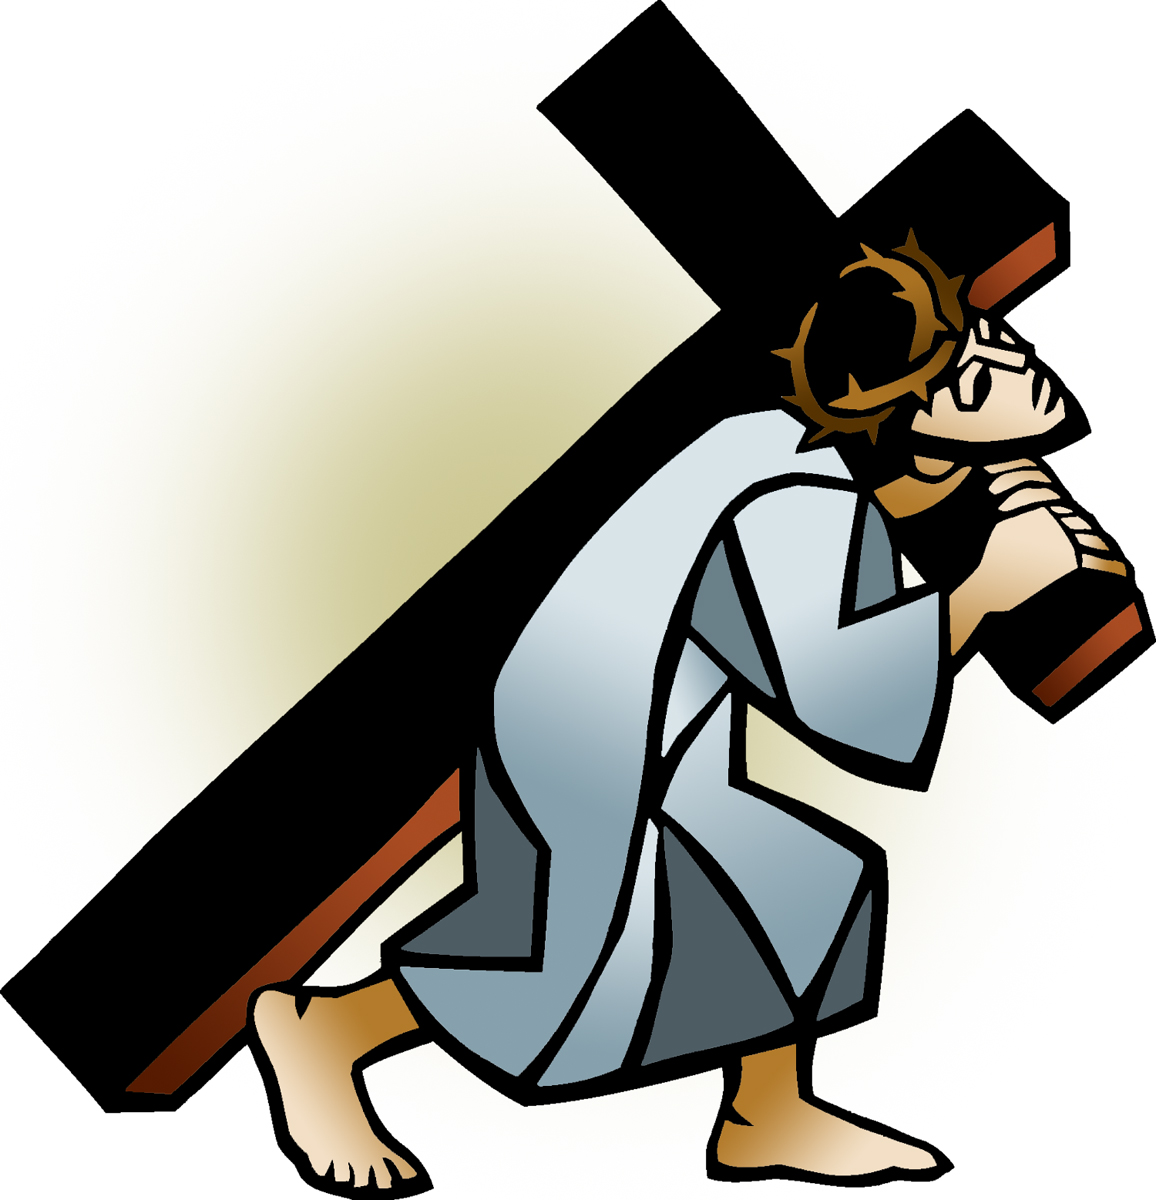 Jesus carries cross play clipart.